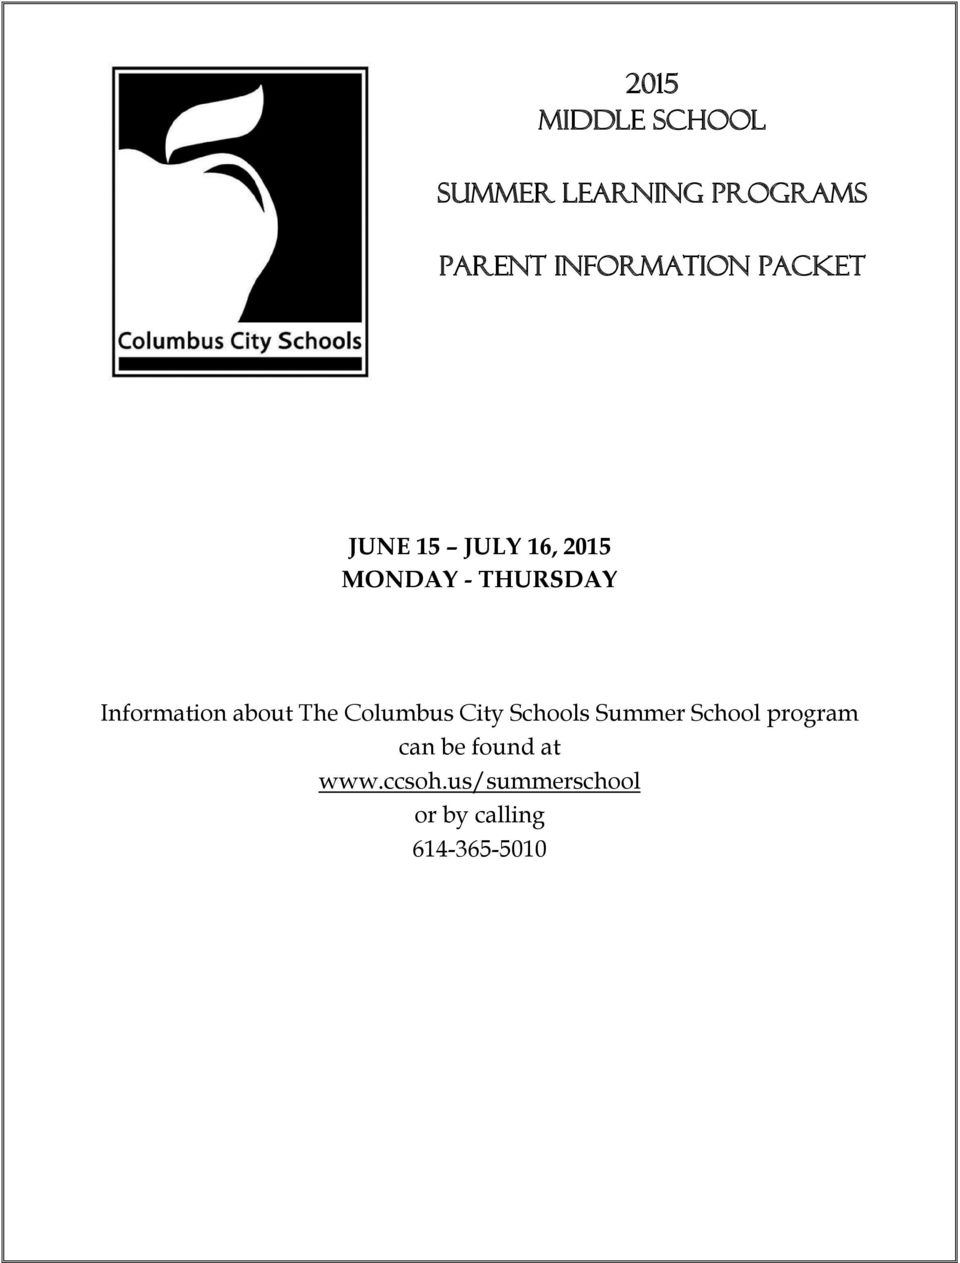 Information about The Columbus City Schools Summer School